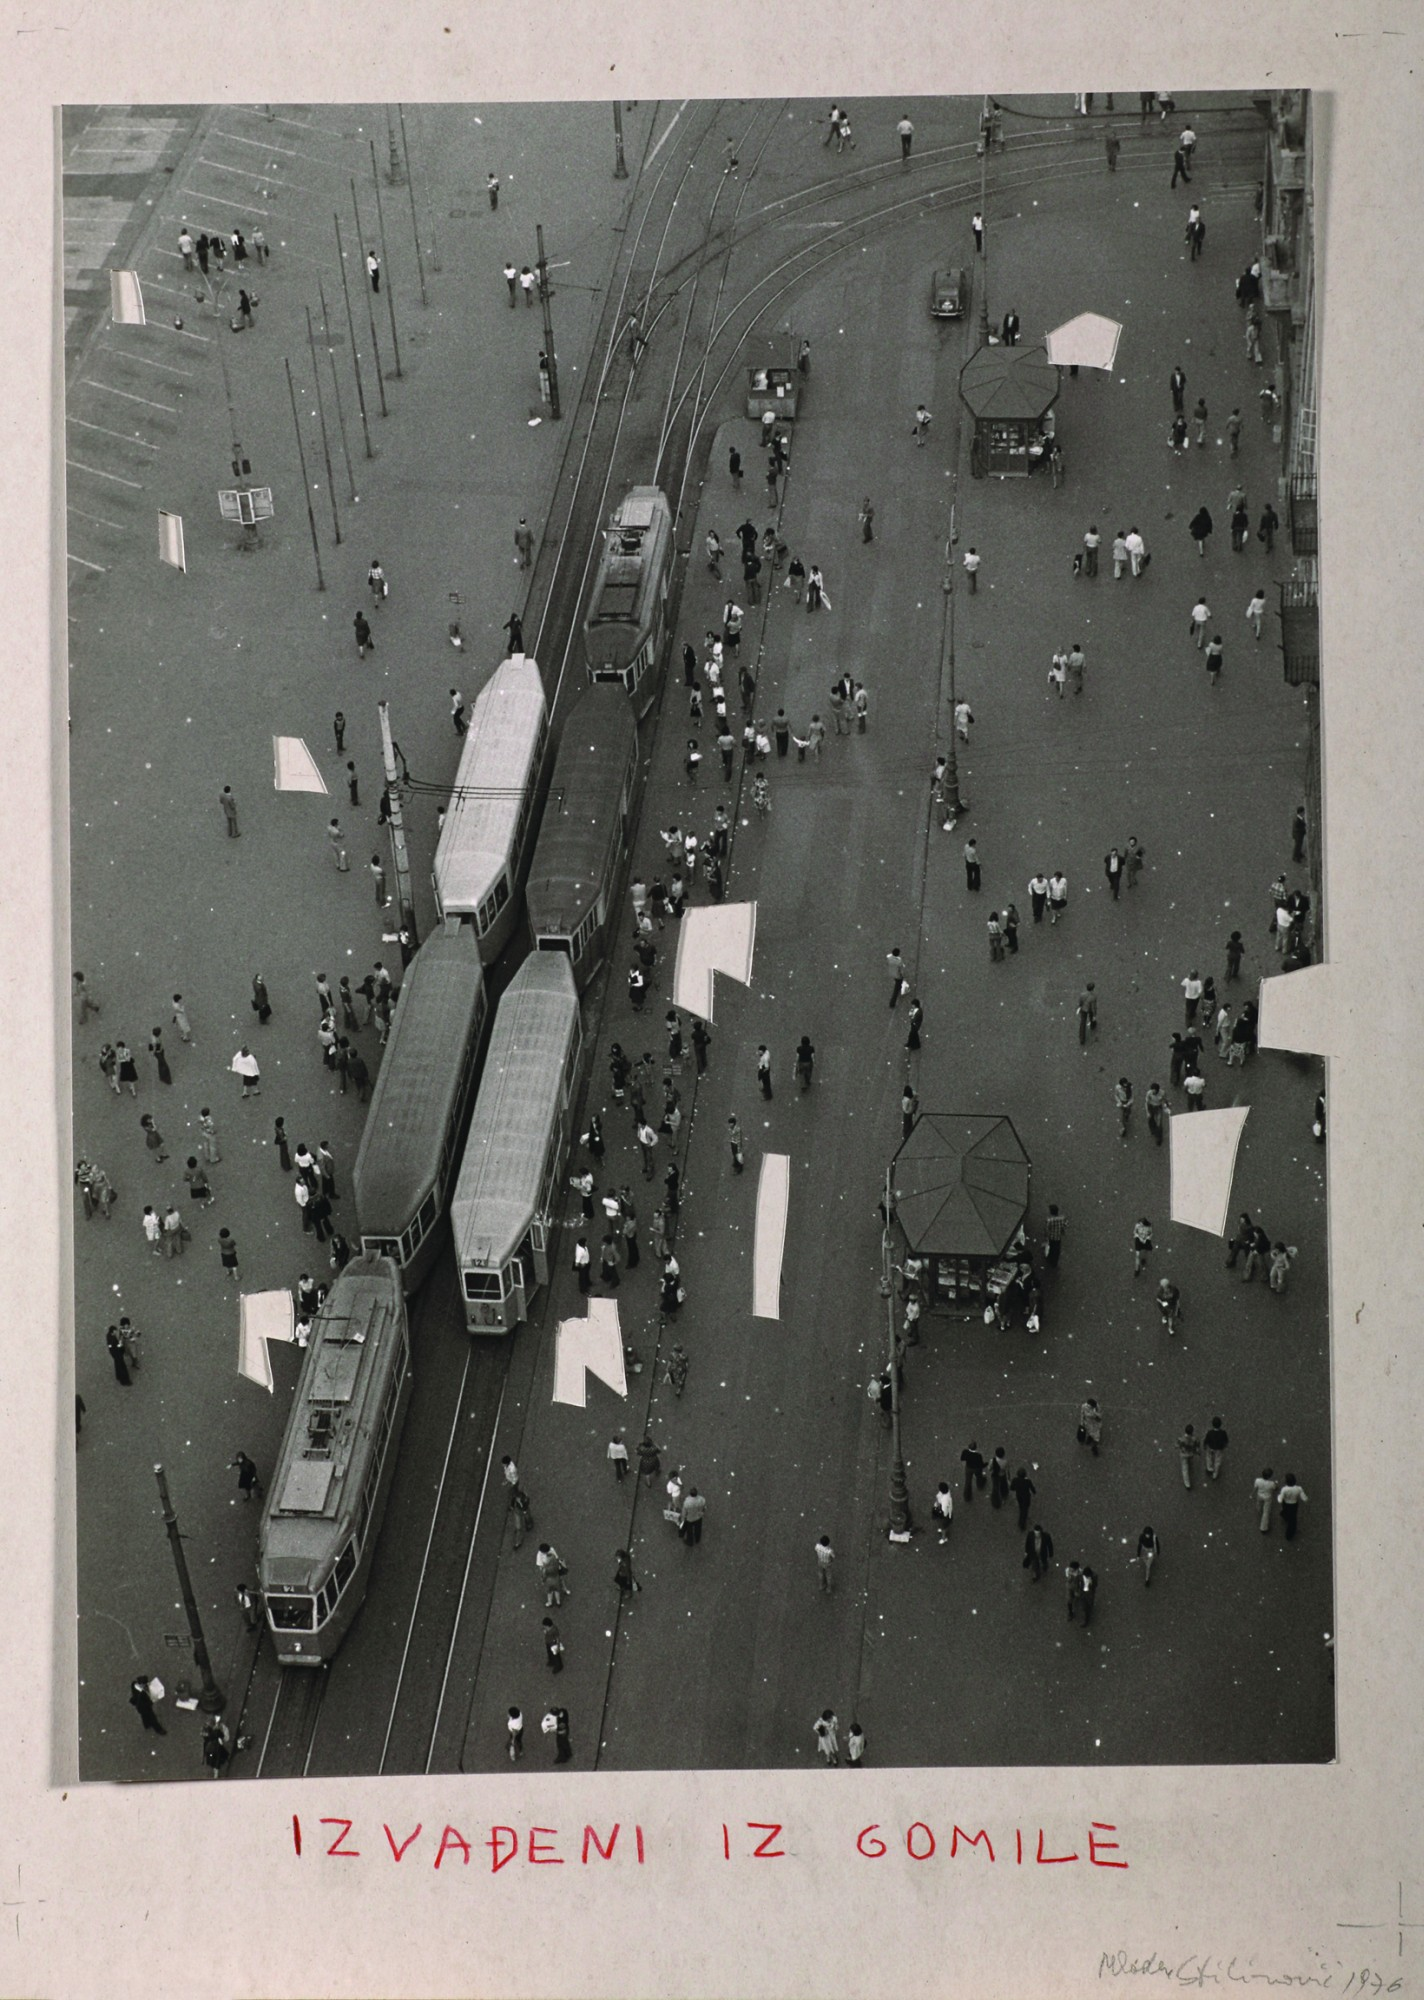 Mladen Stilinović (Group of Six Authors), Taken Out from the Crowd, 1976, bw photograph, pastel, paper, 486 x 350 mm.